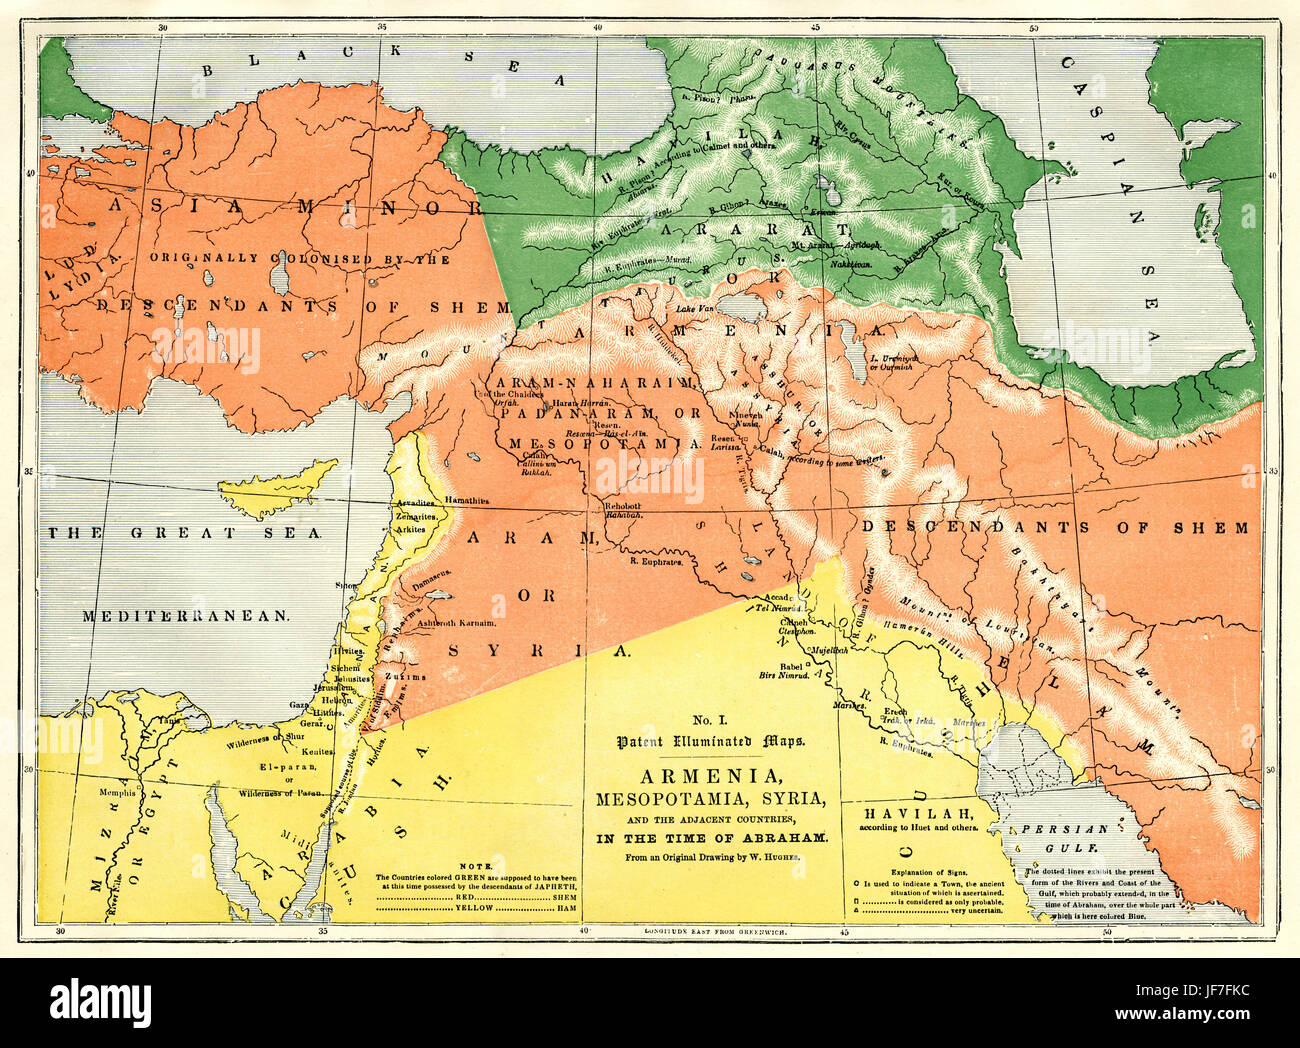 Map showing armenia mesopotamia and syria and adjacent countries in map showing armenia mesopotamia and syria and adjacent countries in the time of abraham from original drawing by william hughes gumiabroncs Gallery